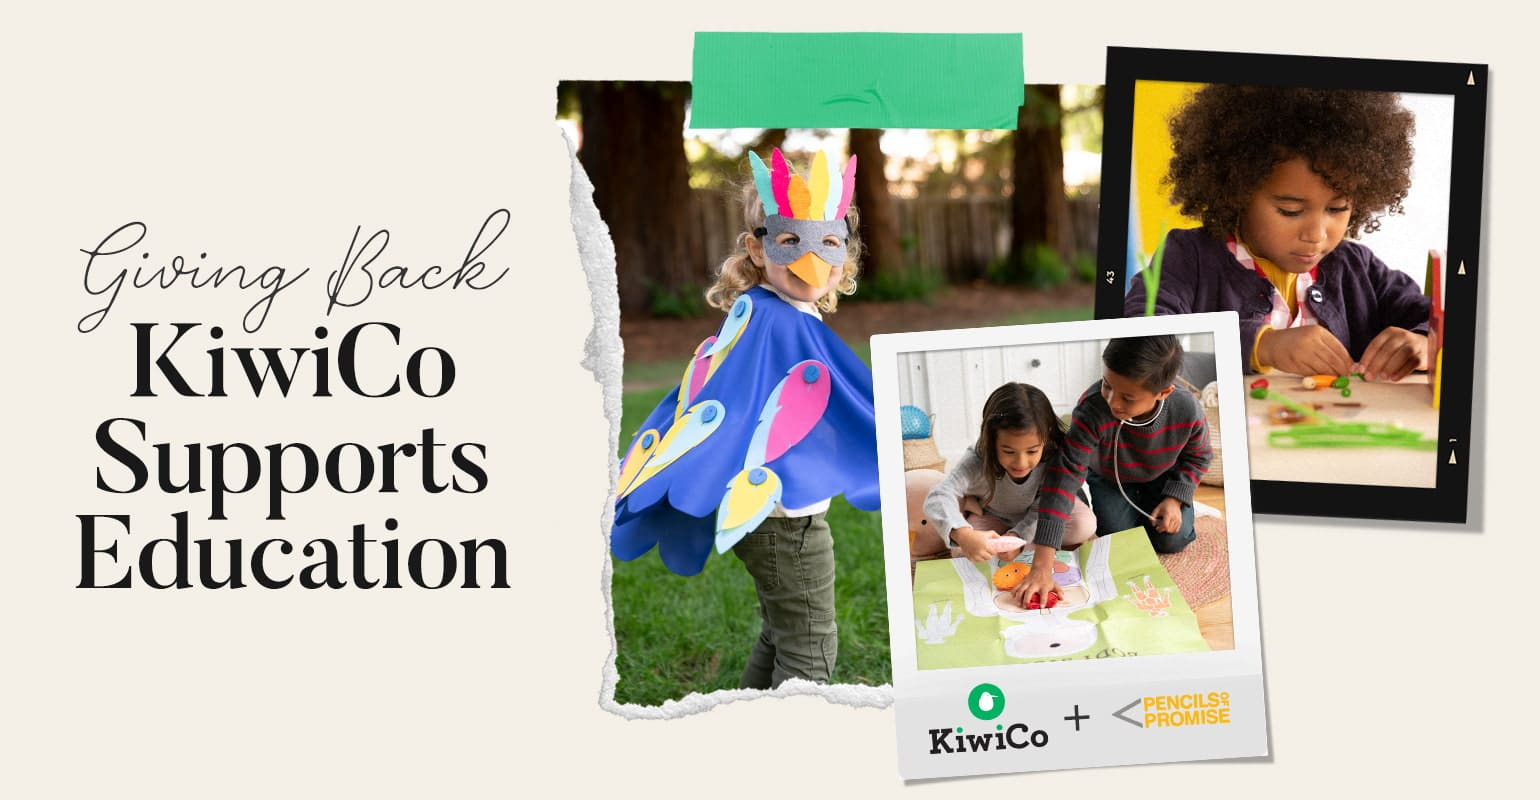 KiwiCo supports Education and Pencils of Promise